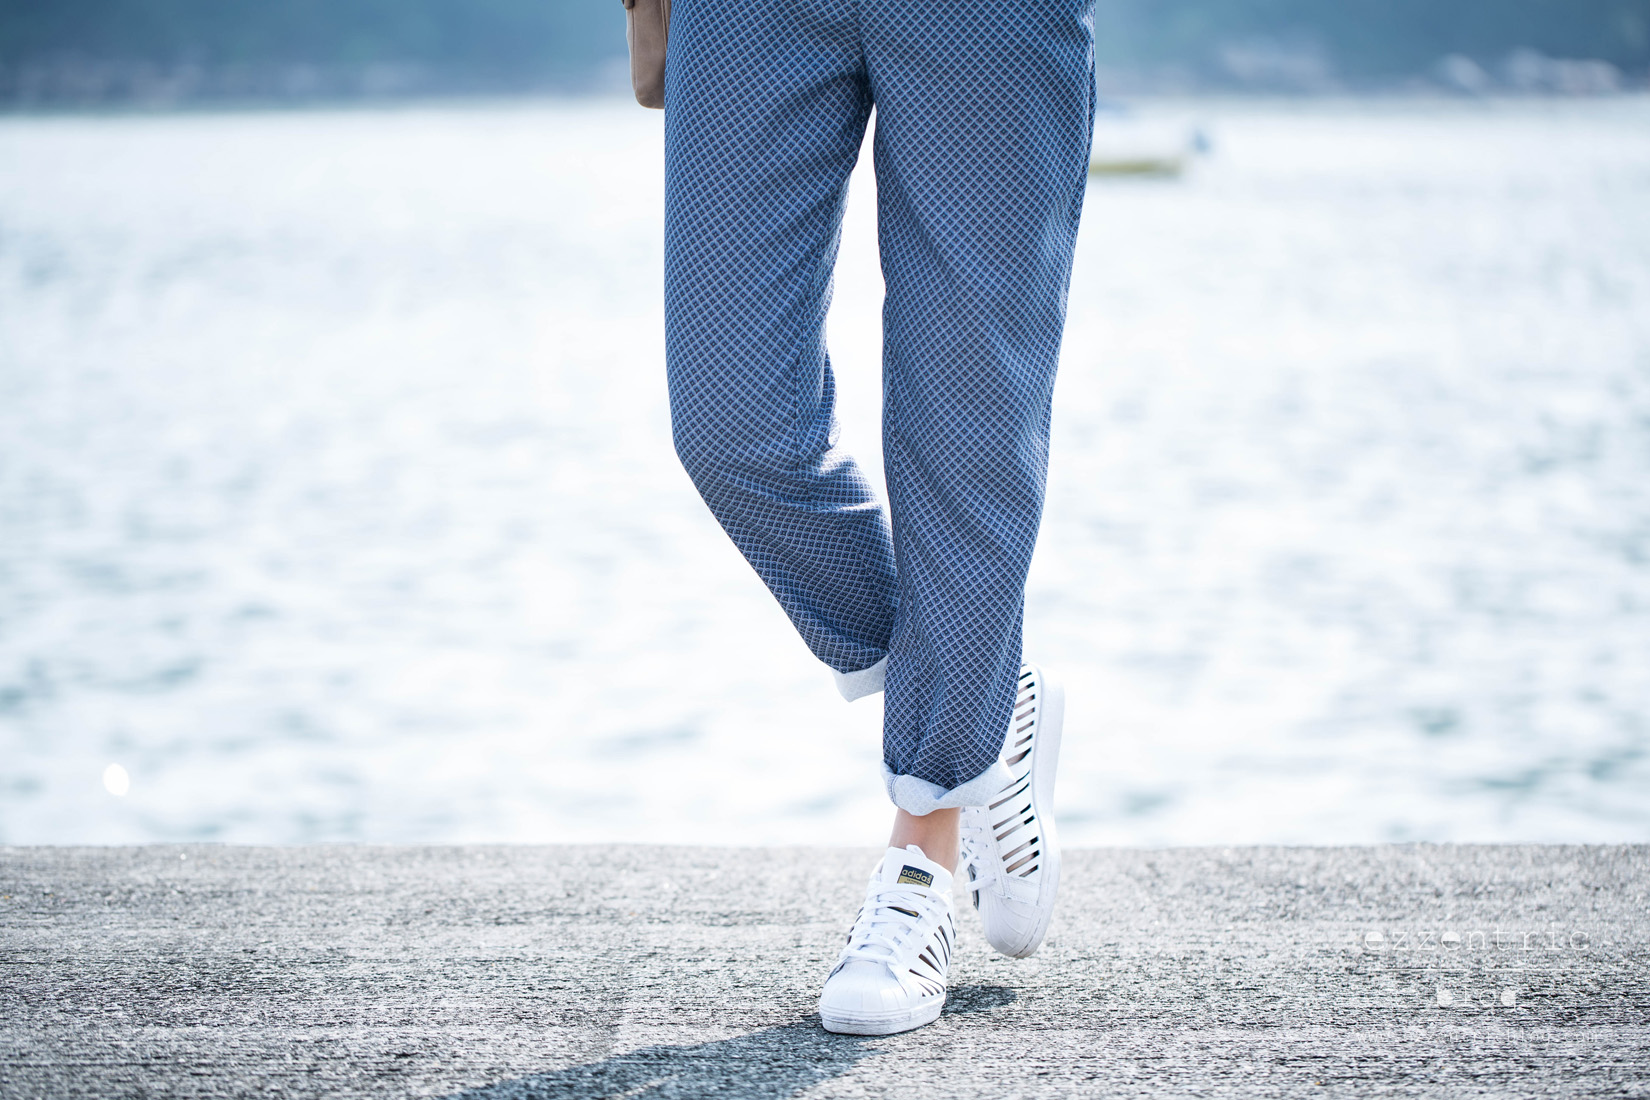 Zara jumpsuit , American Appareal Belt , Adidas Original Cut Out Sneakers 03